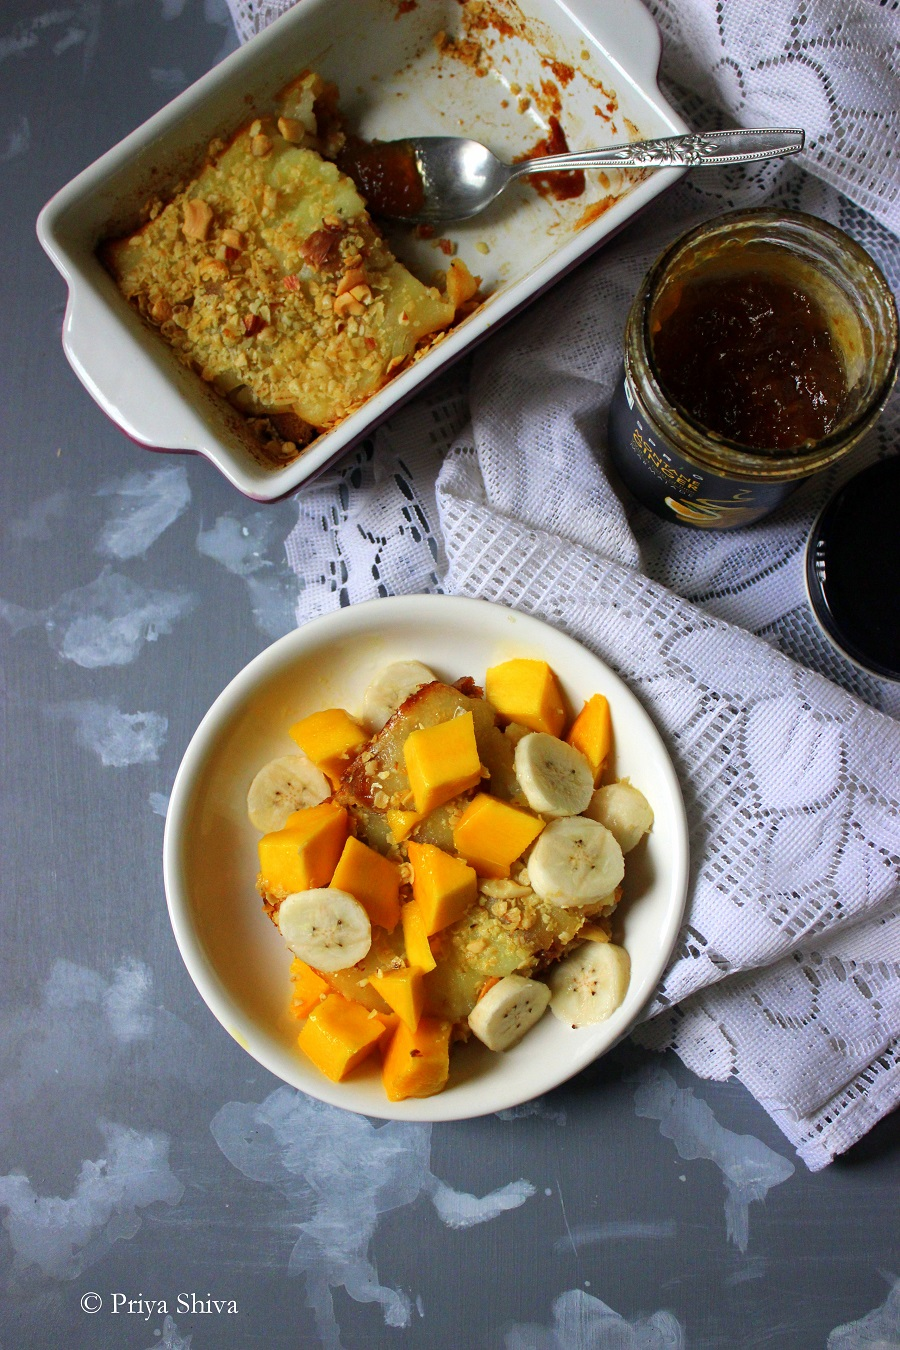 Ginger marmalade bread and butter pudding